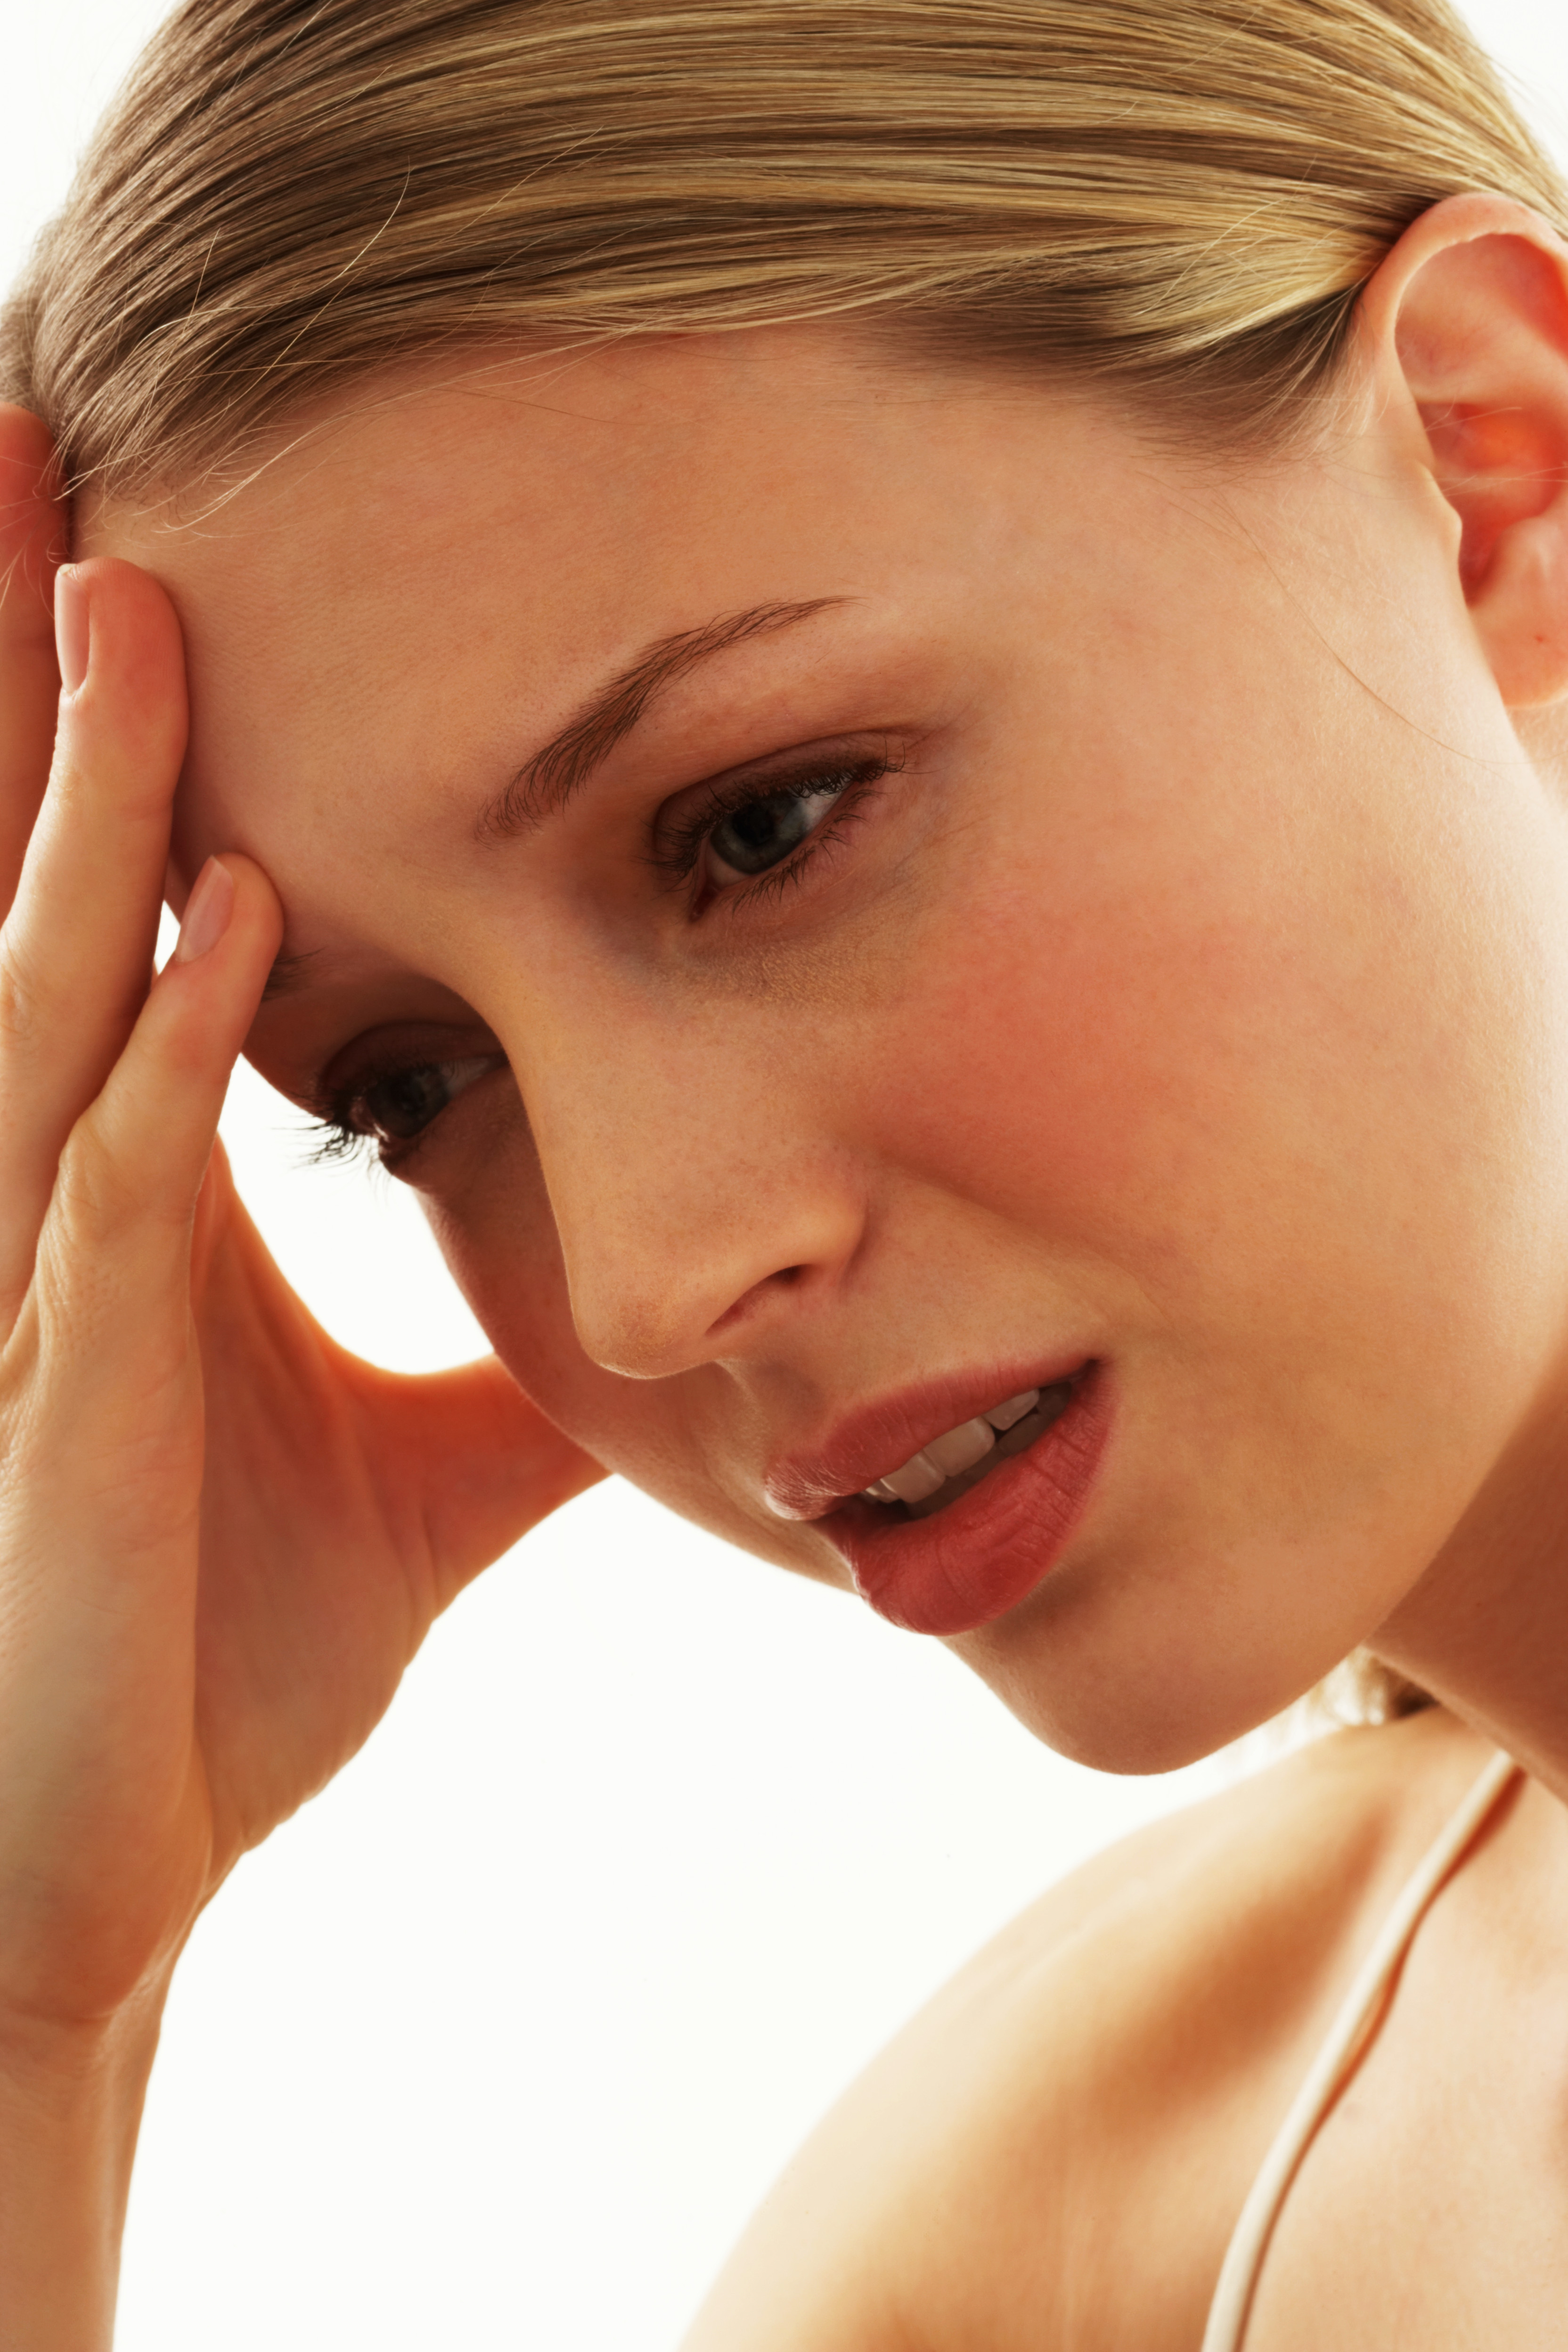 Discovery of Migraine Genes Could Pave the Way for a Cure